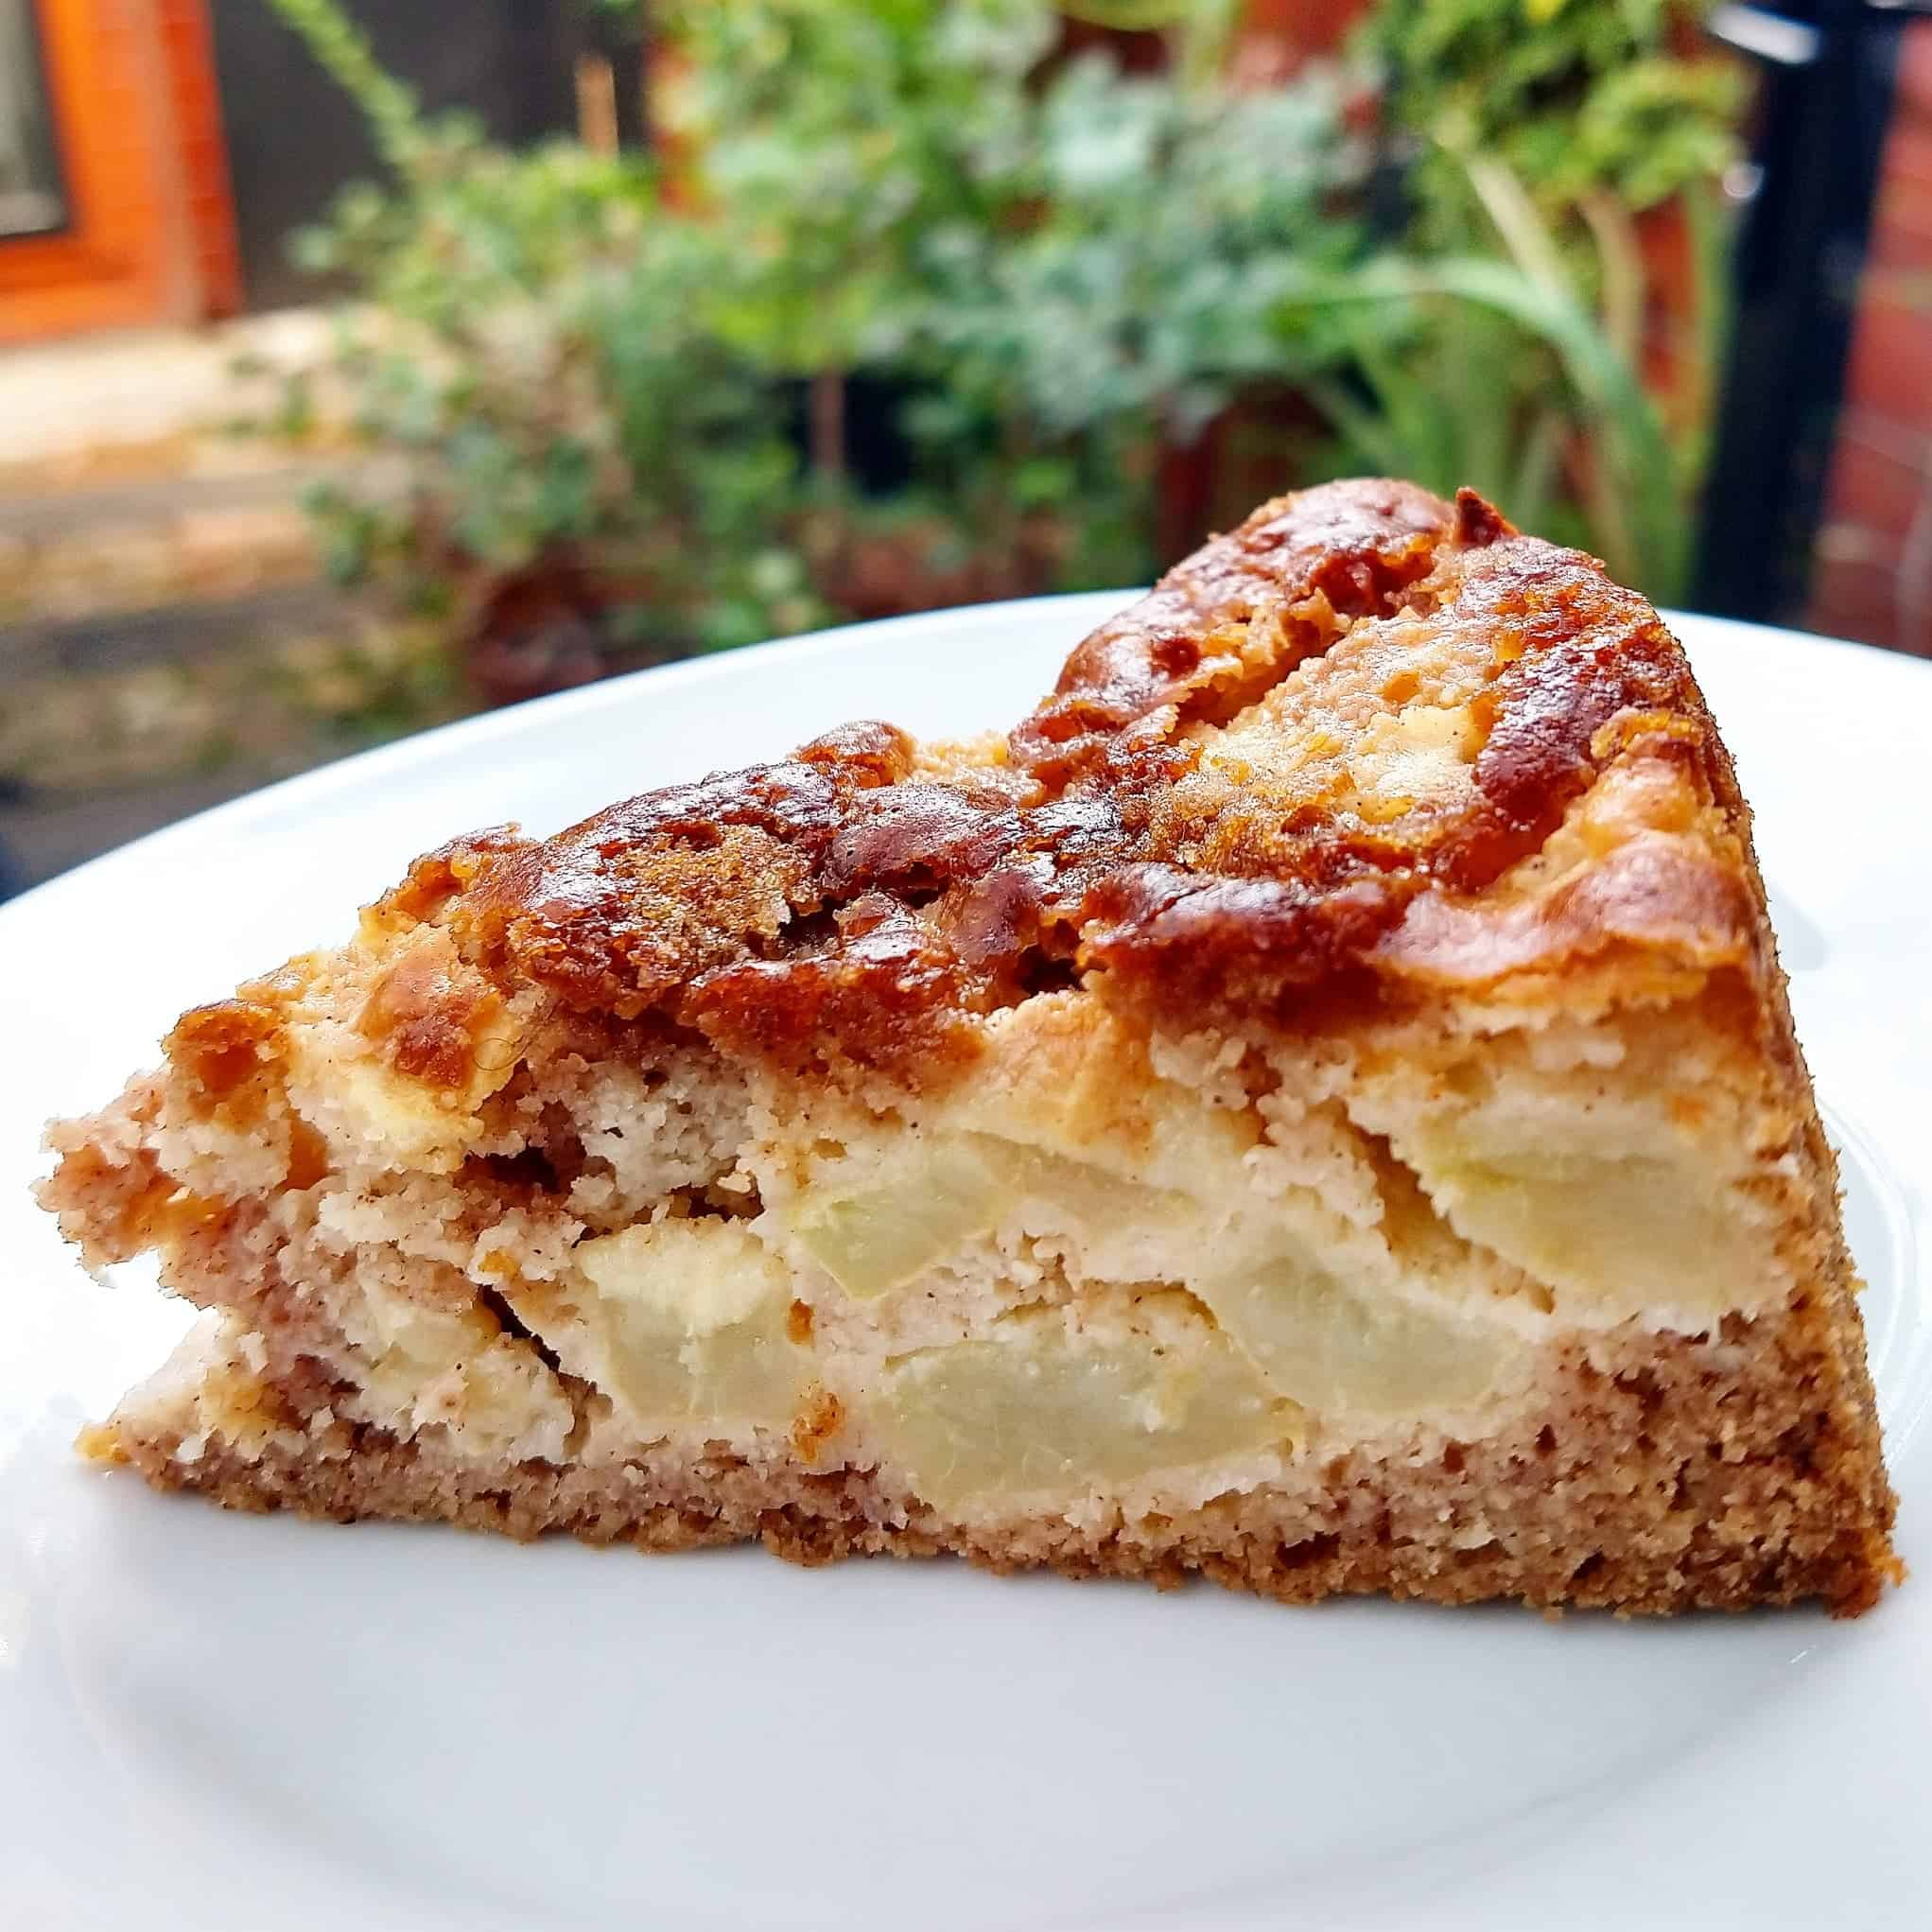 Gluten-Free Vegan Apple Cake